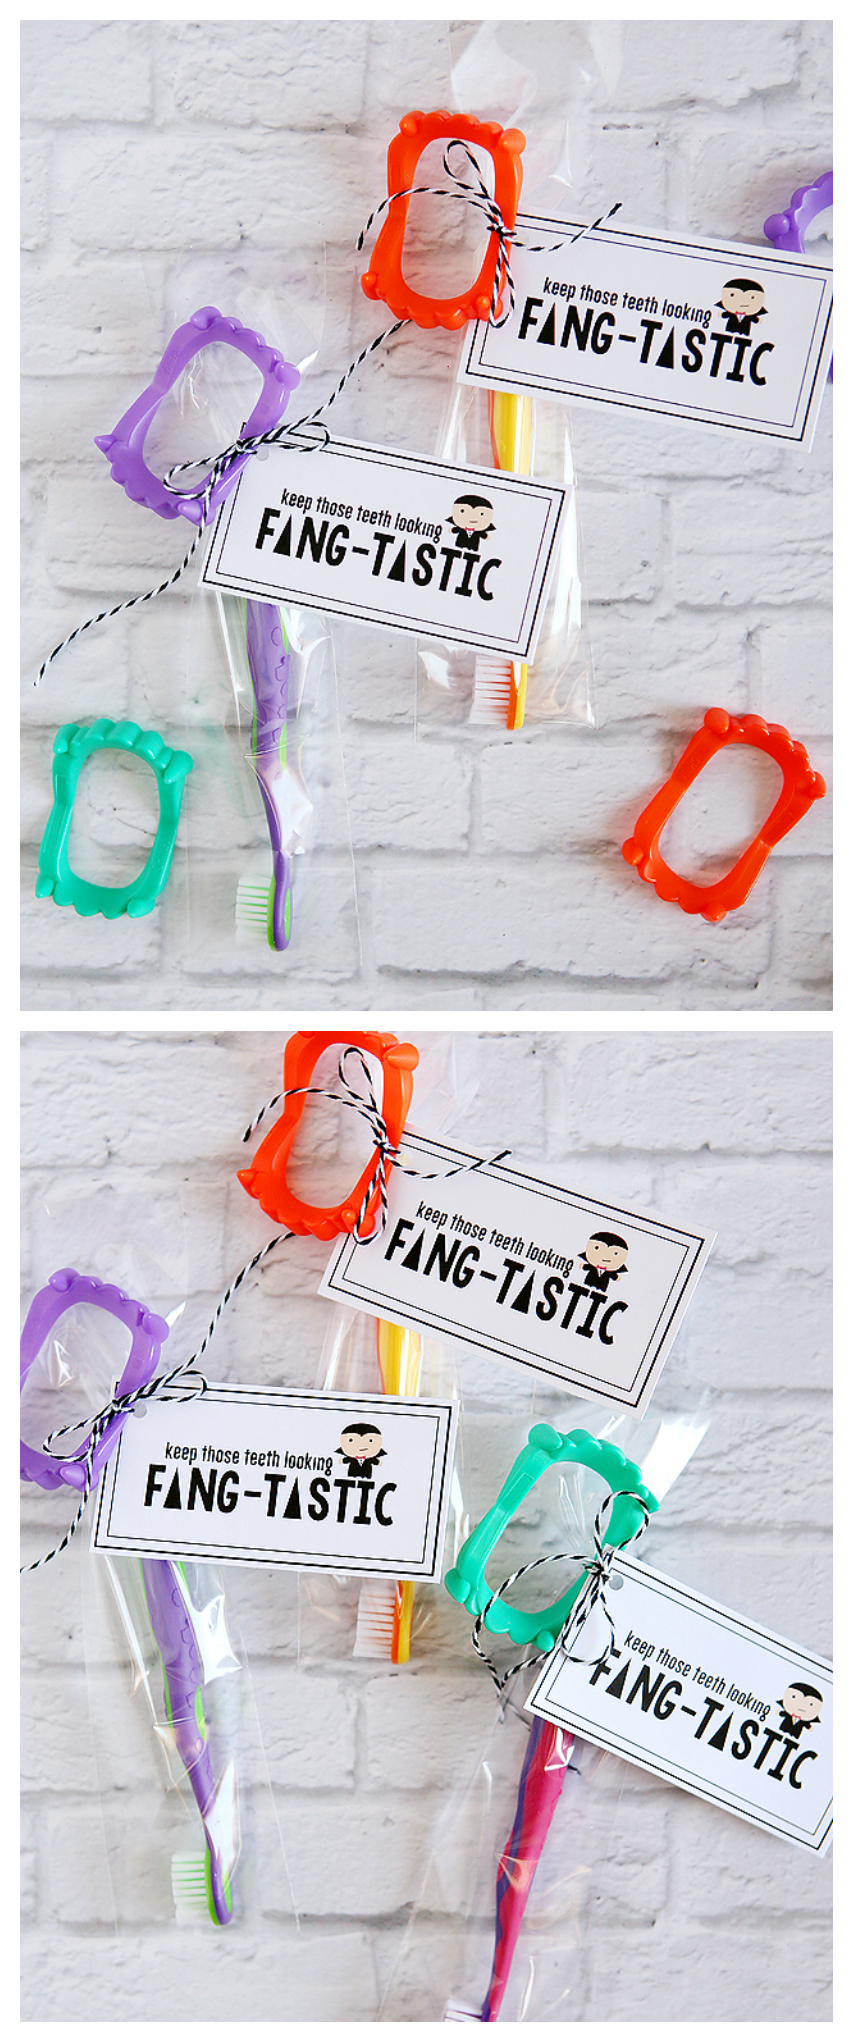 Keep Those Teeth Looking FANG-TASTIC | Halloween Gift Ideas that include the free printable tags!